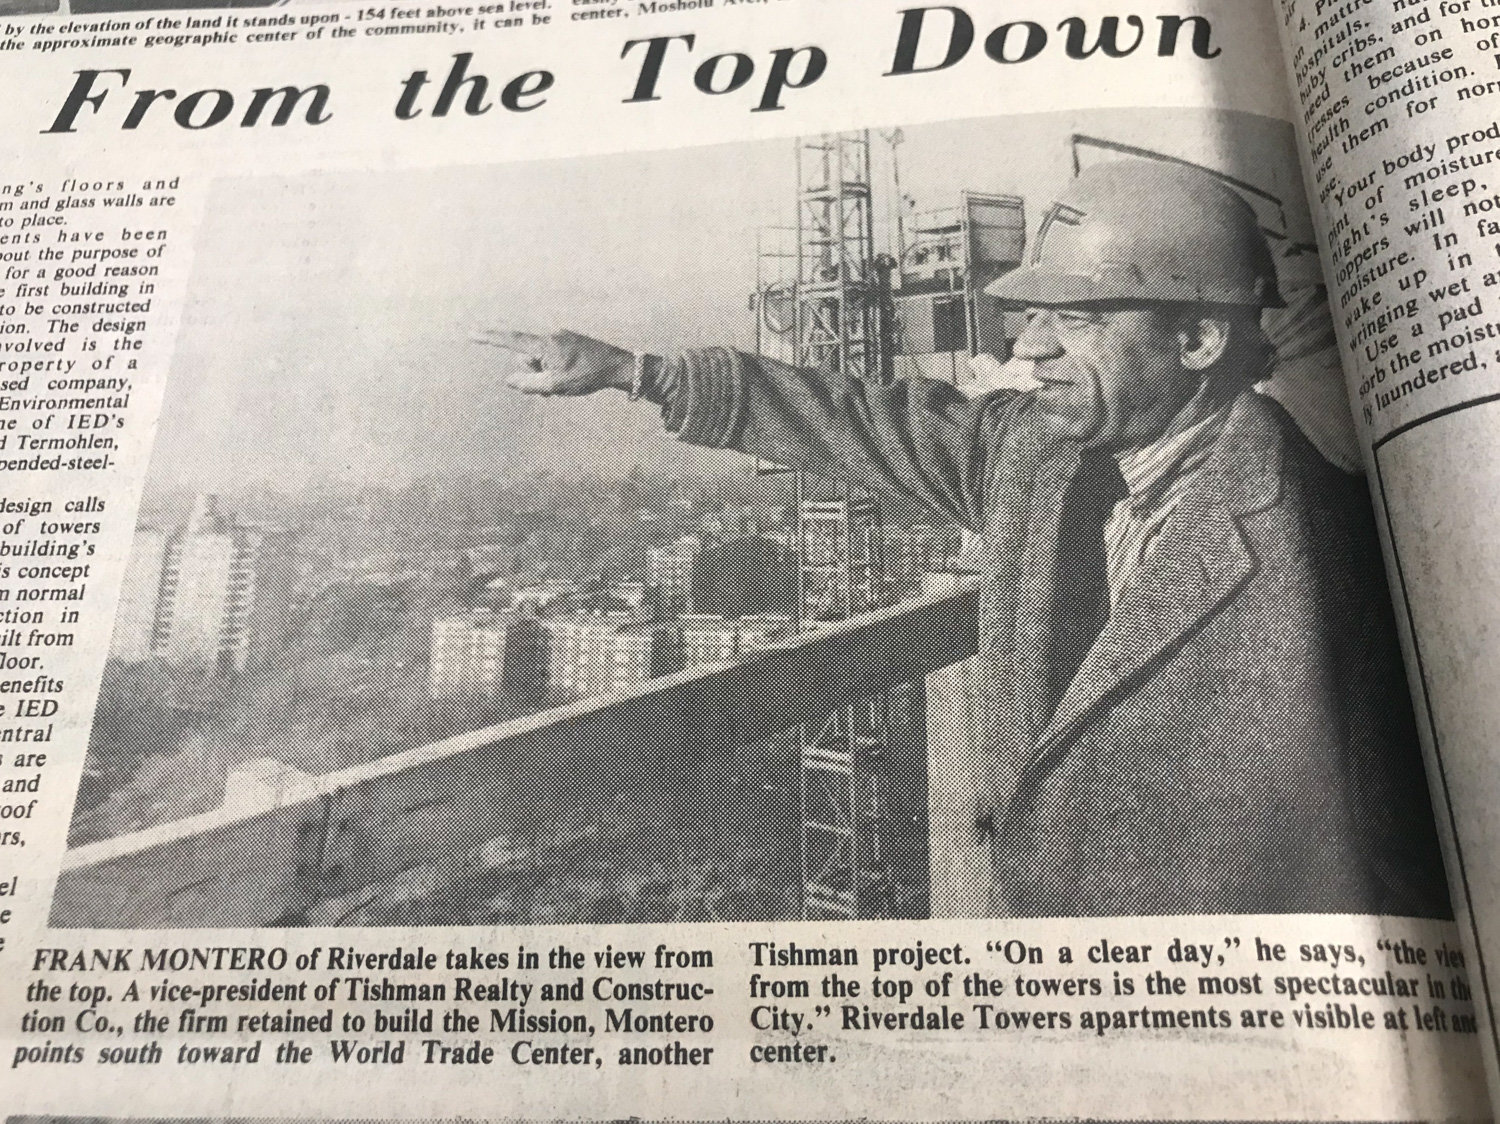 Frank Montero, a vice president with Tishman Realty and Construction Co., points from the barren towers of the Russian Mission in North Riverdale to another one of his company's projects, the World Trade Center towers 15 miles south in Manhattan. He was joined on this particular trip to the Mosholu Avenue construction site by Riverdale Press features reporter Sol Solomon.